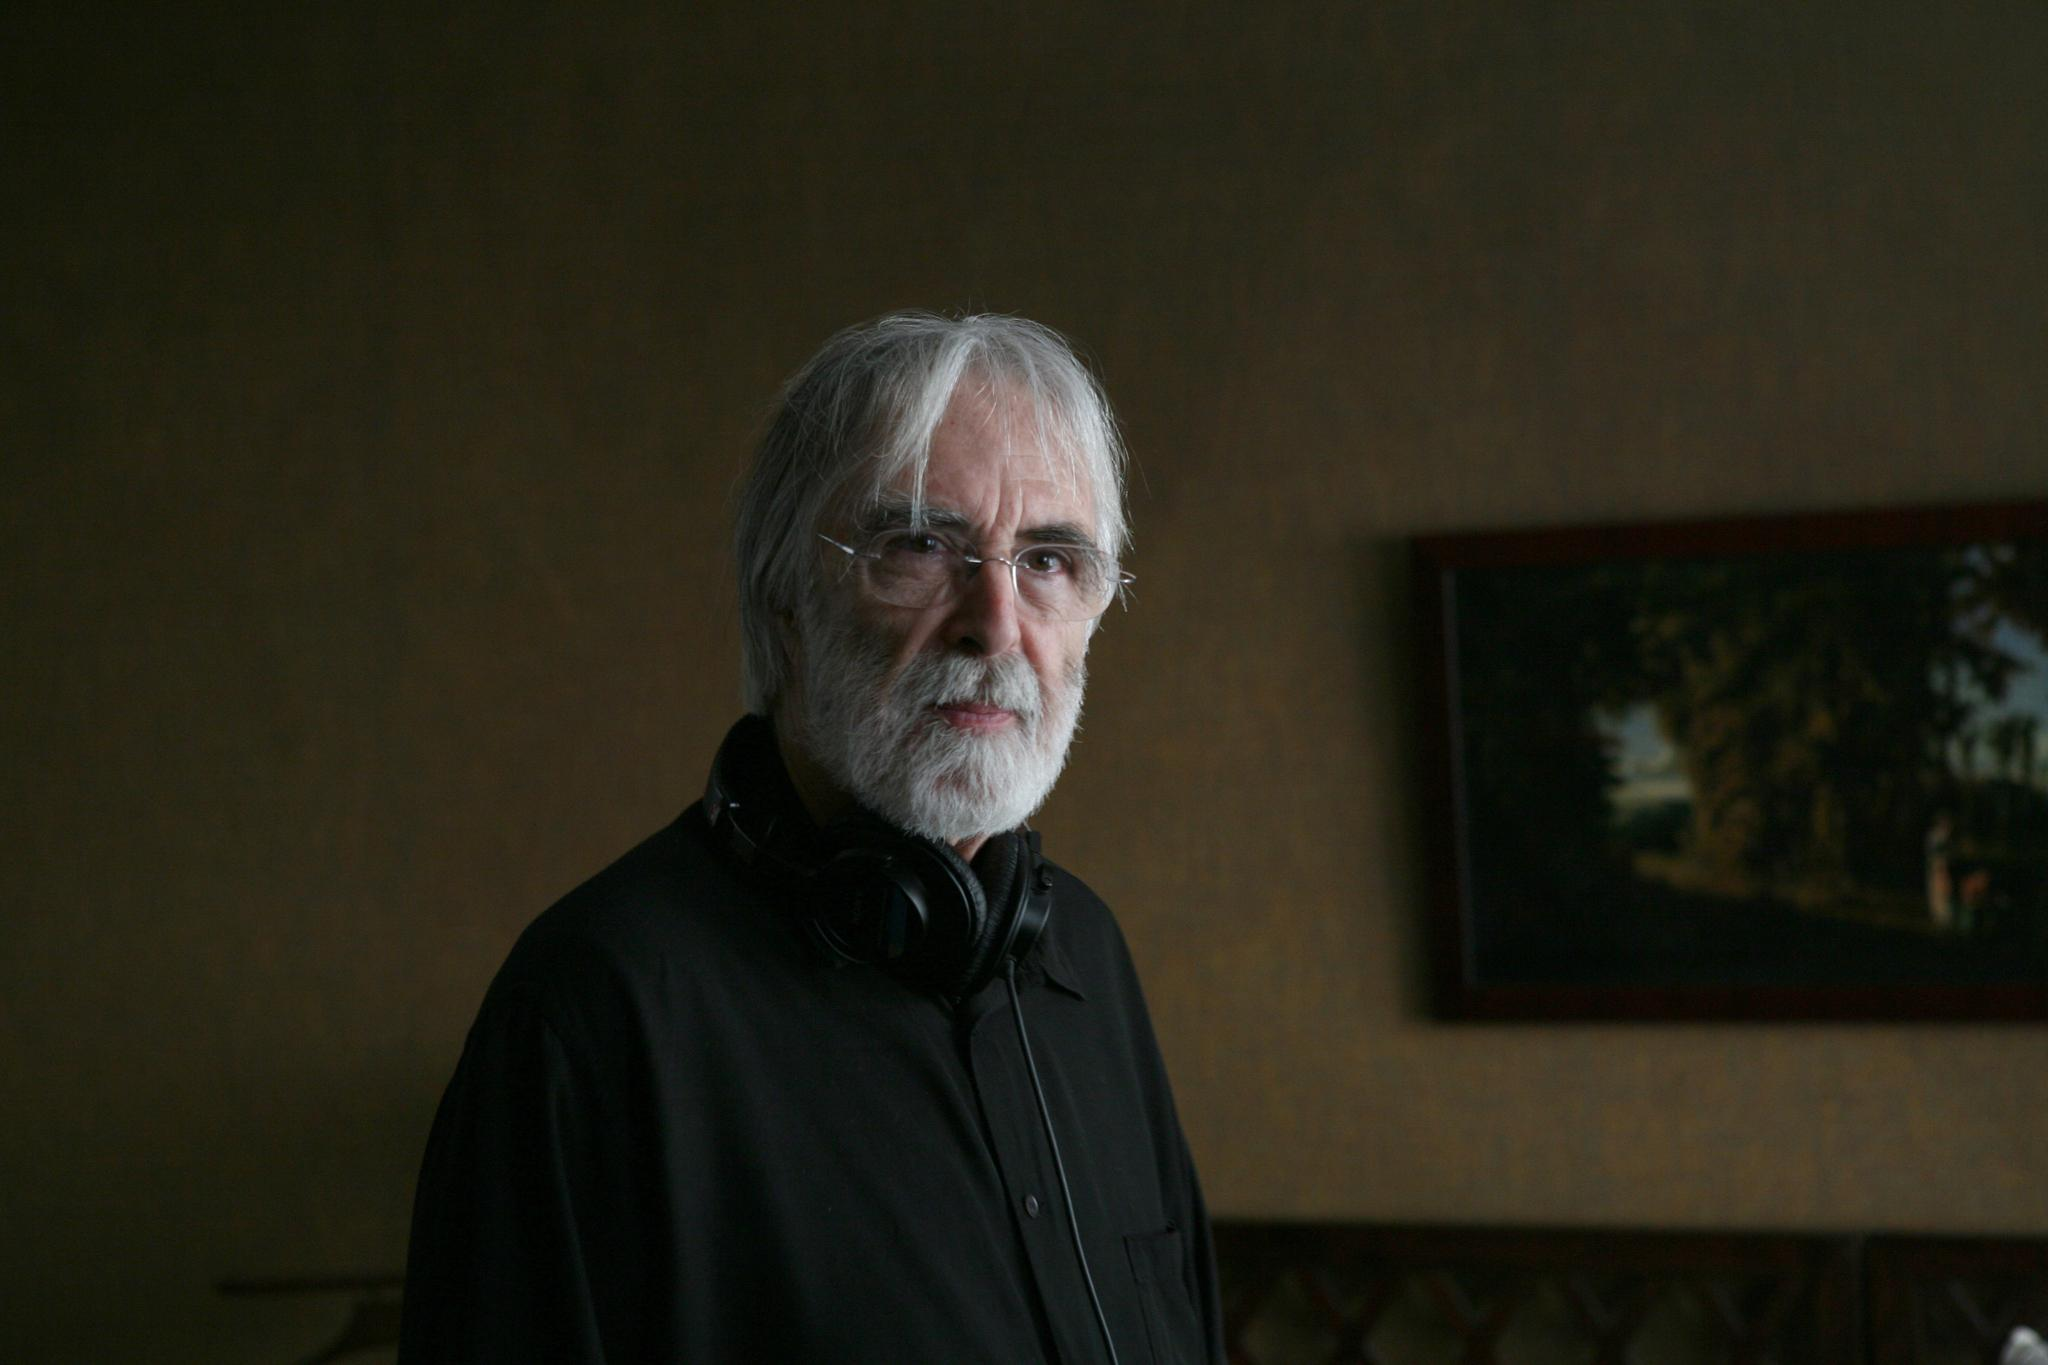 michael haneke benny's videomichael haneke amour, michael haneke young, michael haneke rotten tomatoes, michael haneke biographie, michael haneke don giovanni, michael haneke kinopoisk, michael haneke opera, michael haneke love, michael haneke filmografia, michael haneke funny games, michael haneke net worth, michael haneke interview, michael haneke films, michael haneke wiki, michael haneke benny's video, michael haneke oscar, michael haneke happy end, michael haneke hidden, michael haneke imdb, michael haneke twitter